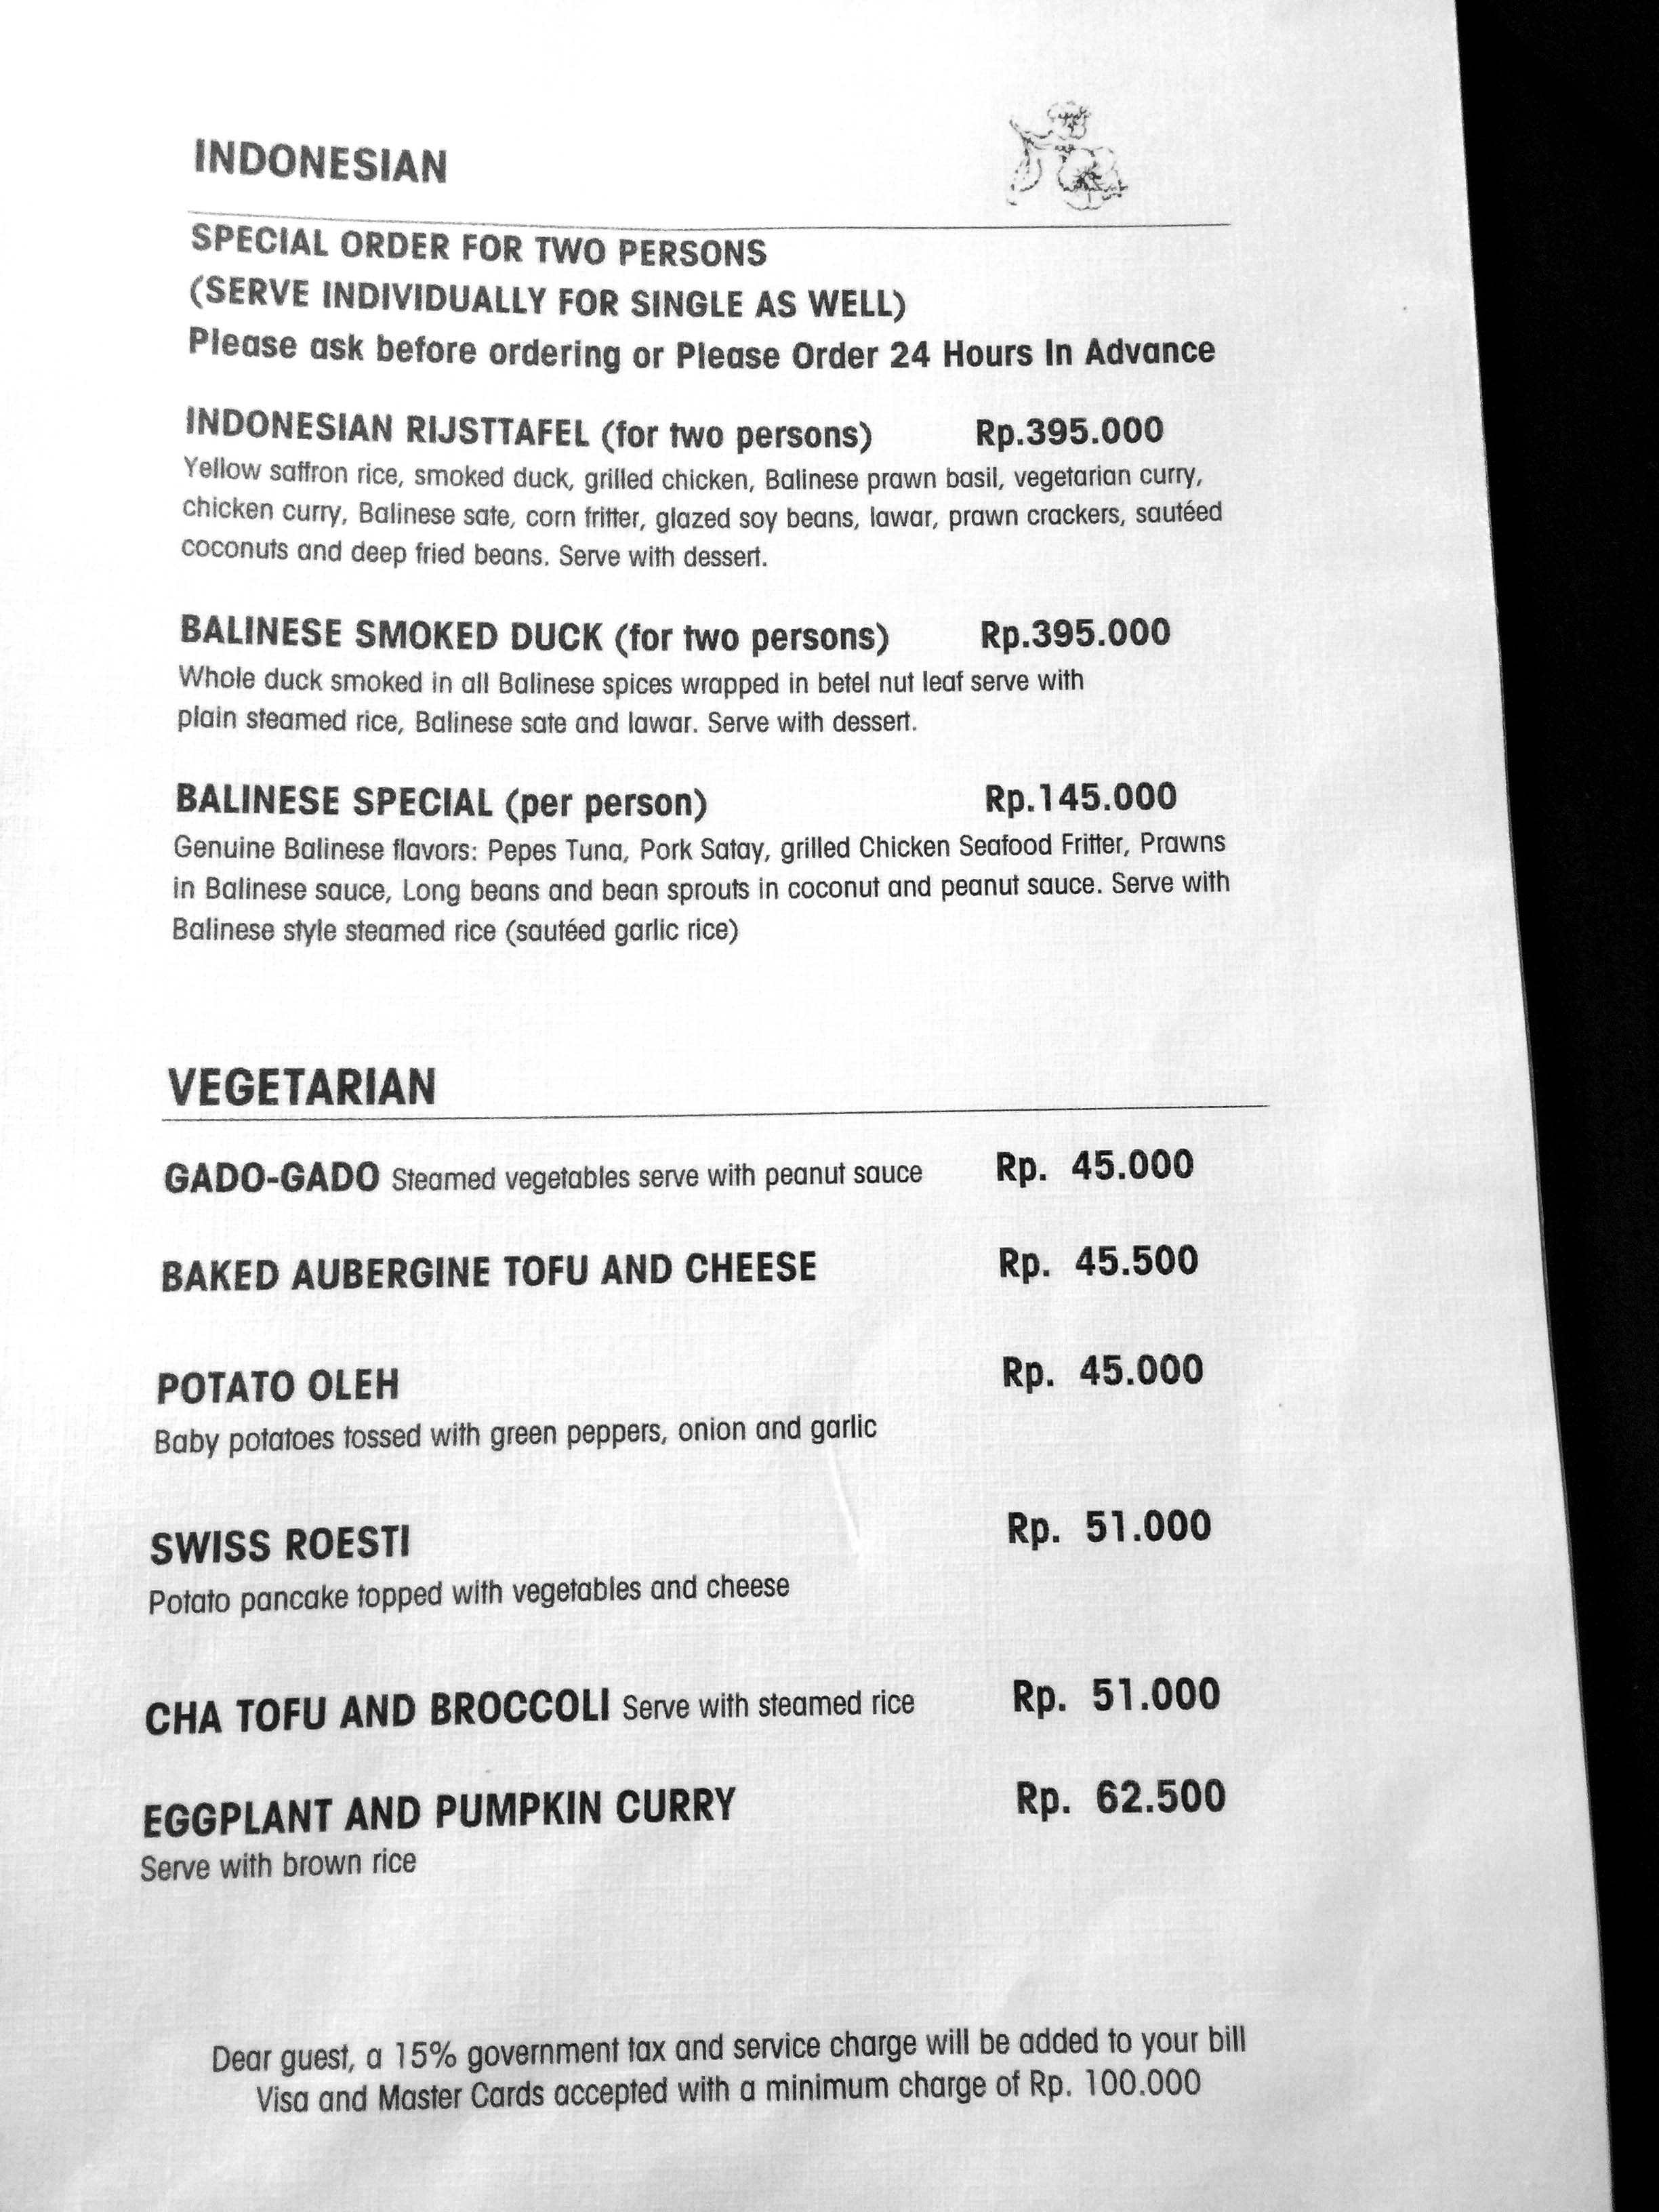 Cafe Wayan Menu - Indo, Vegetarians